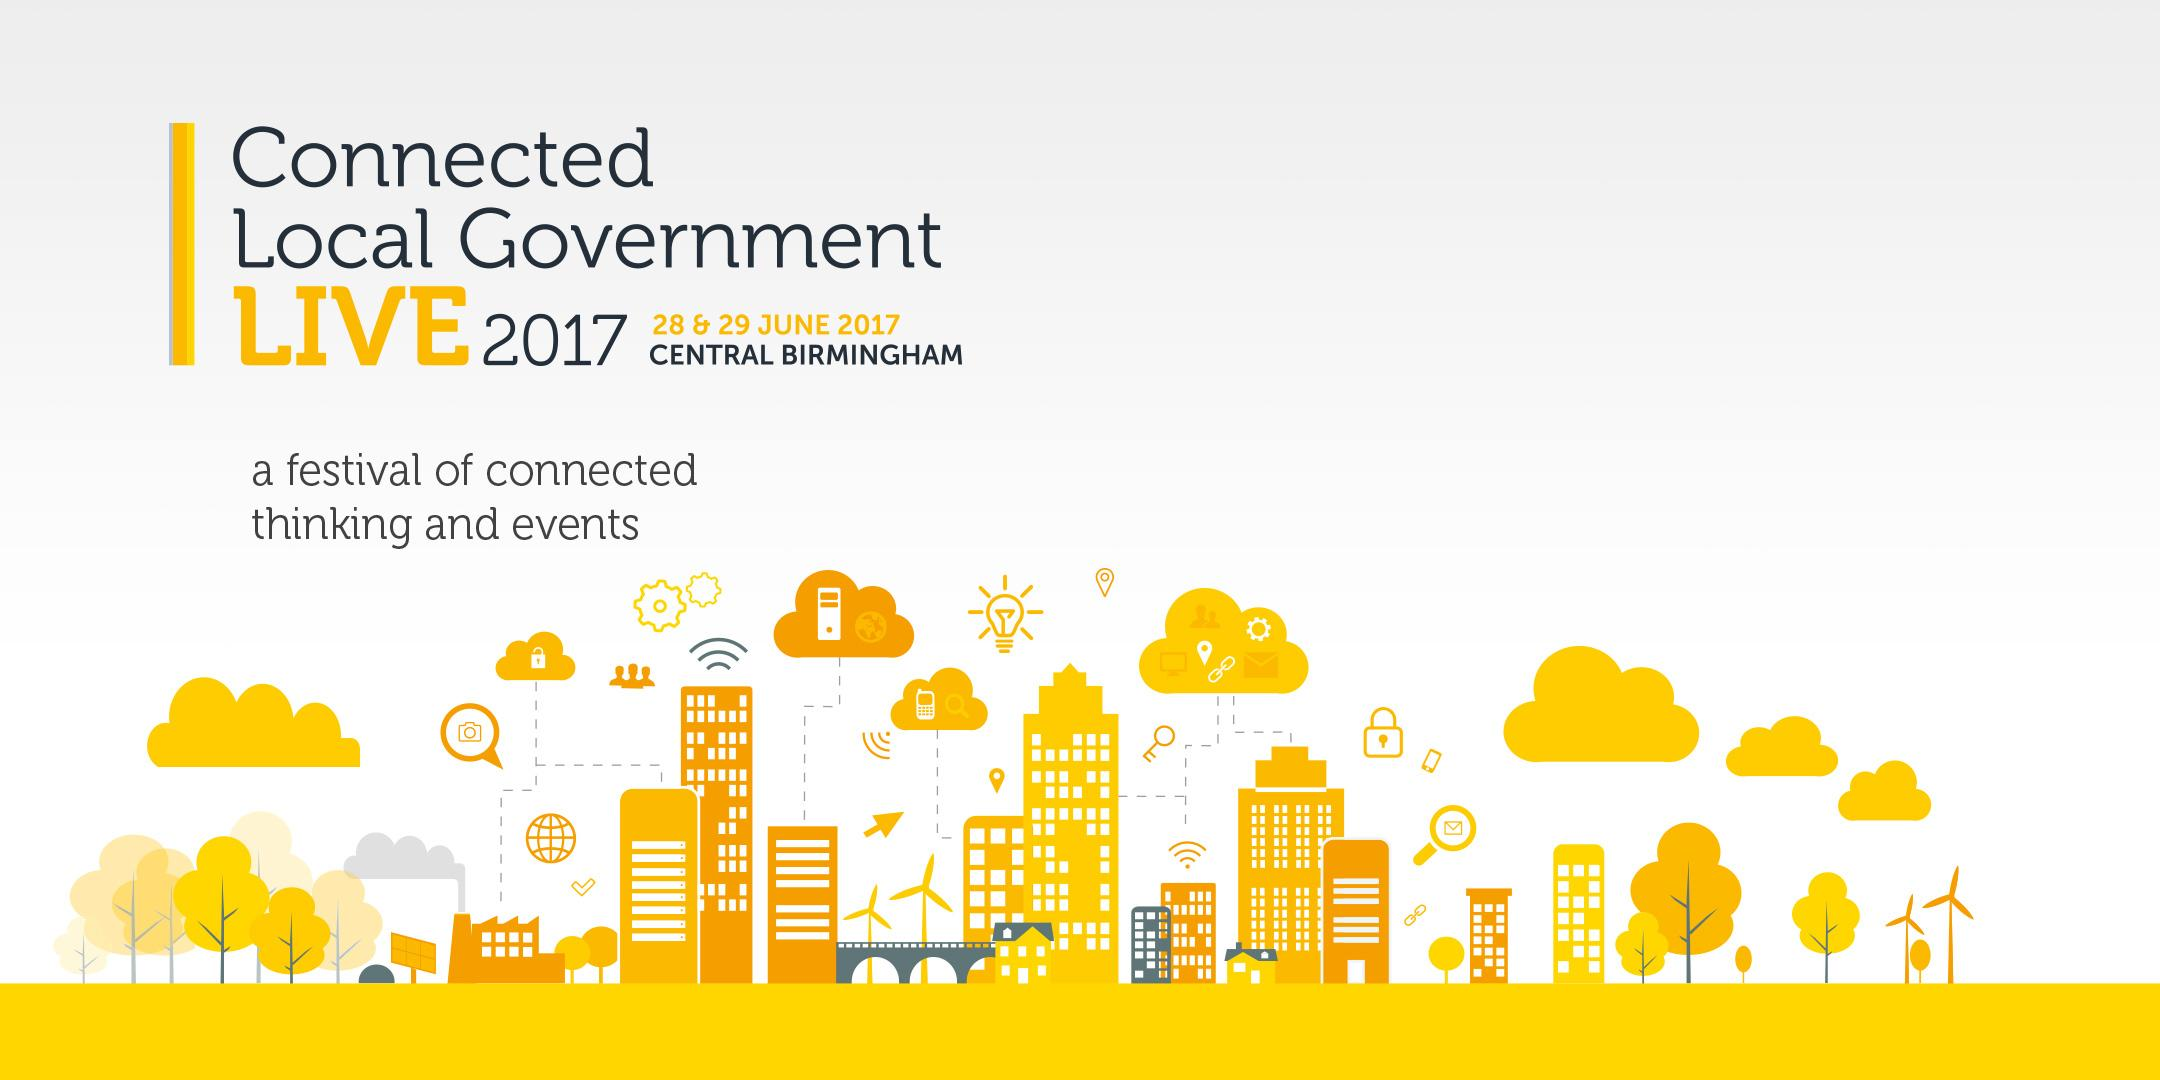 Connected Local Government Live 2017